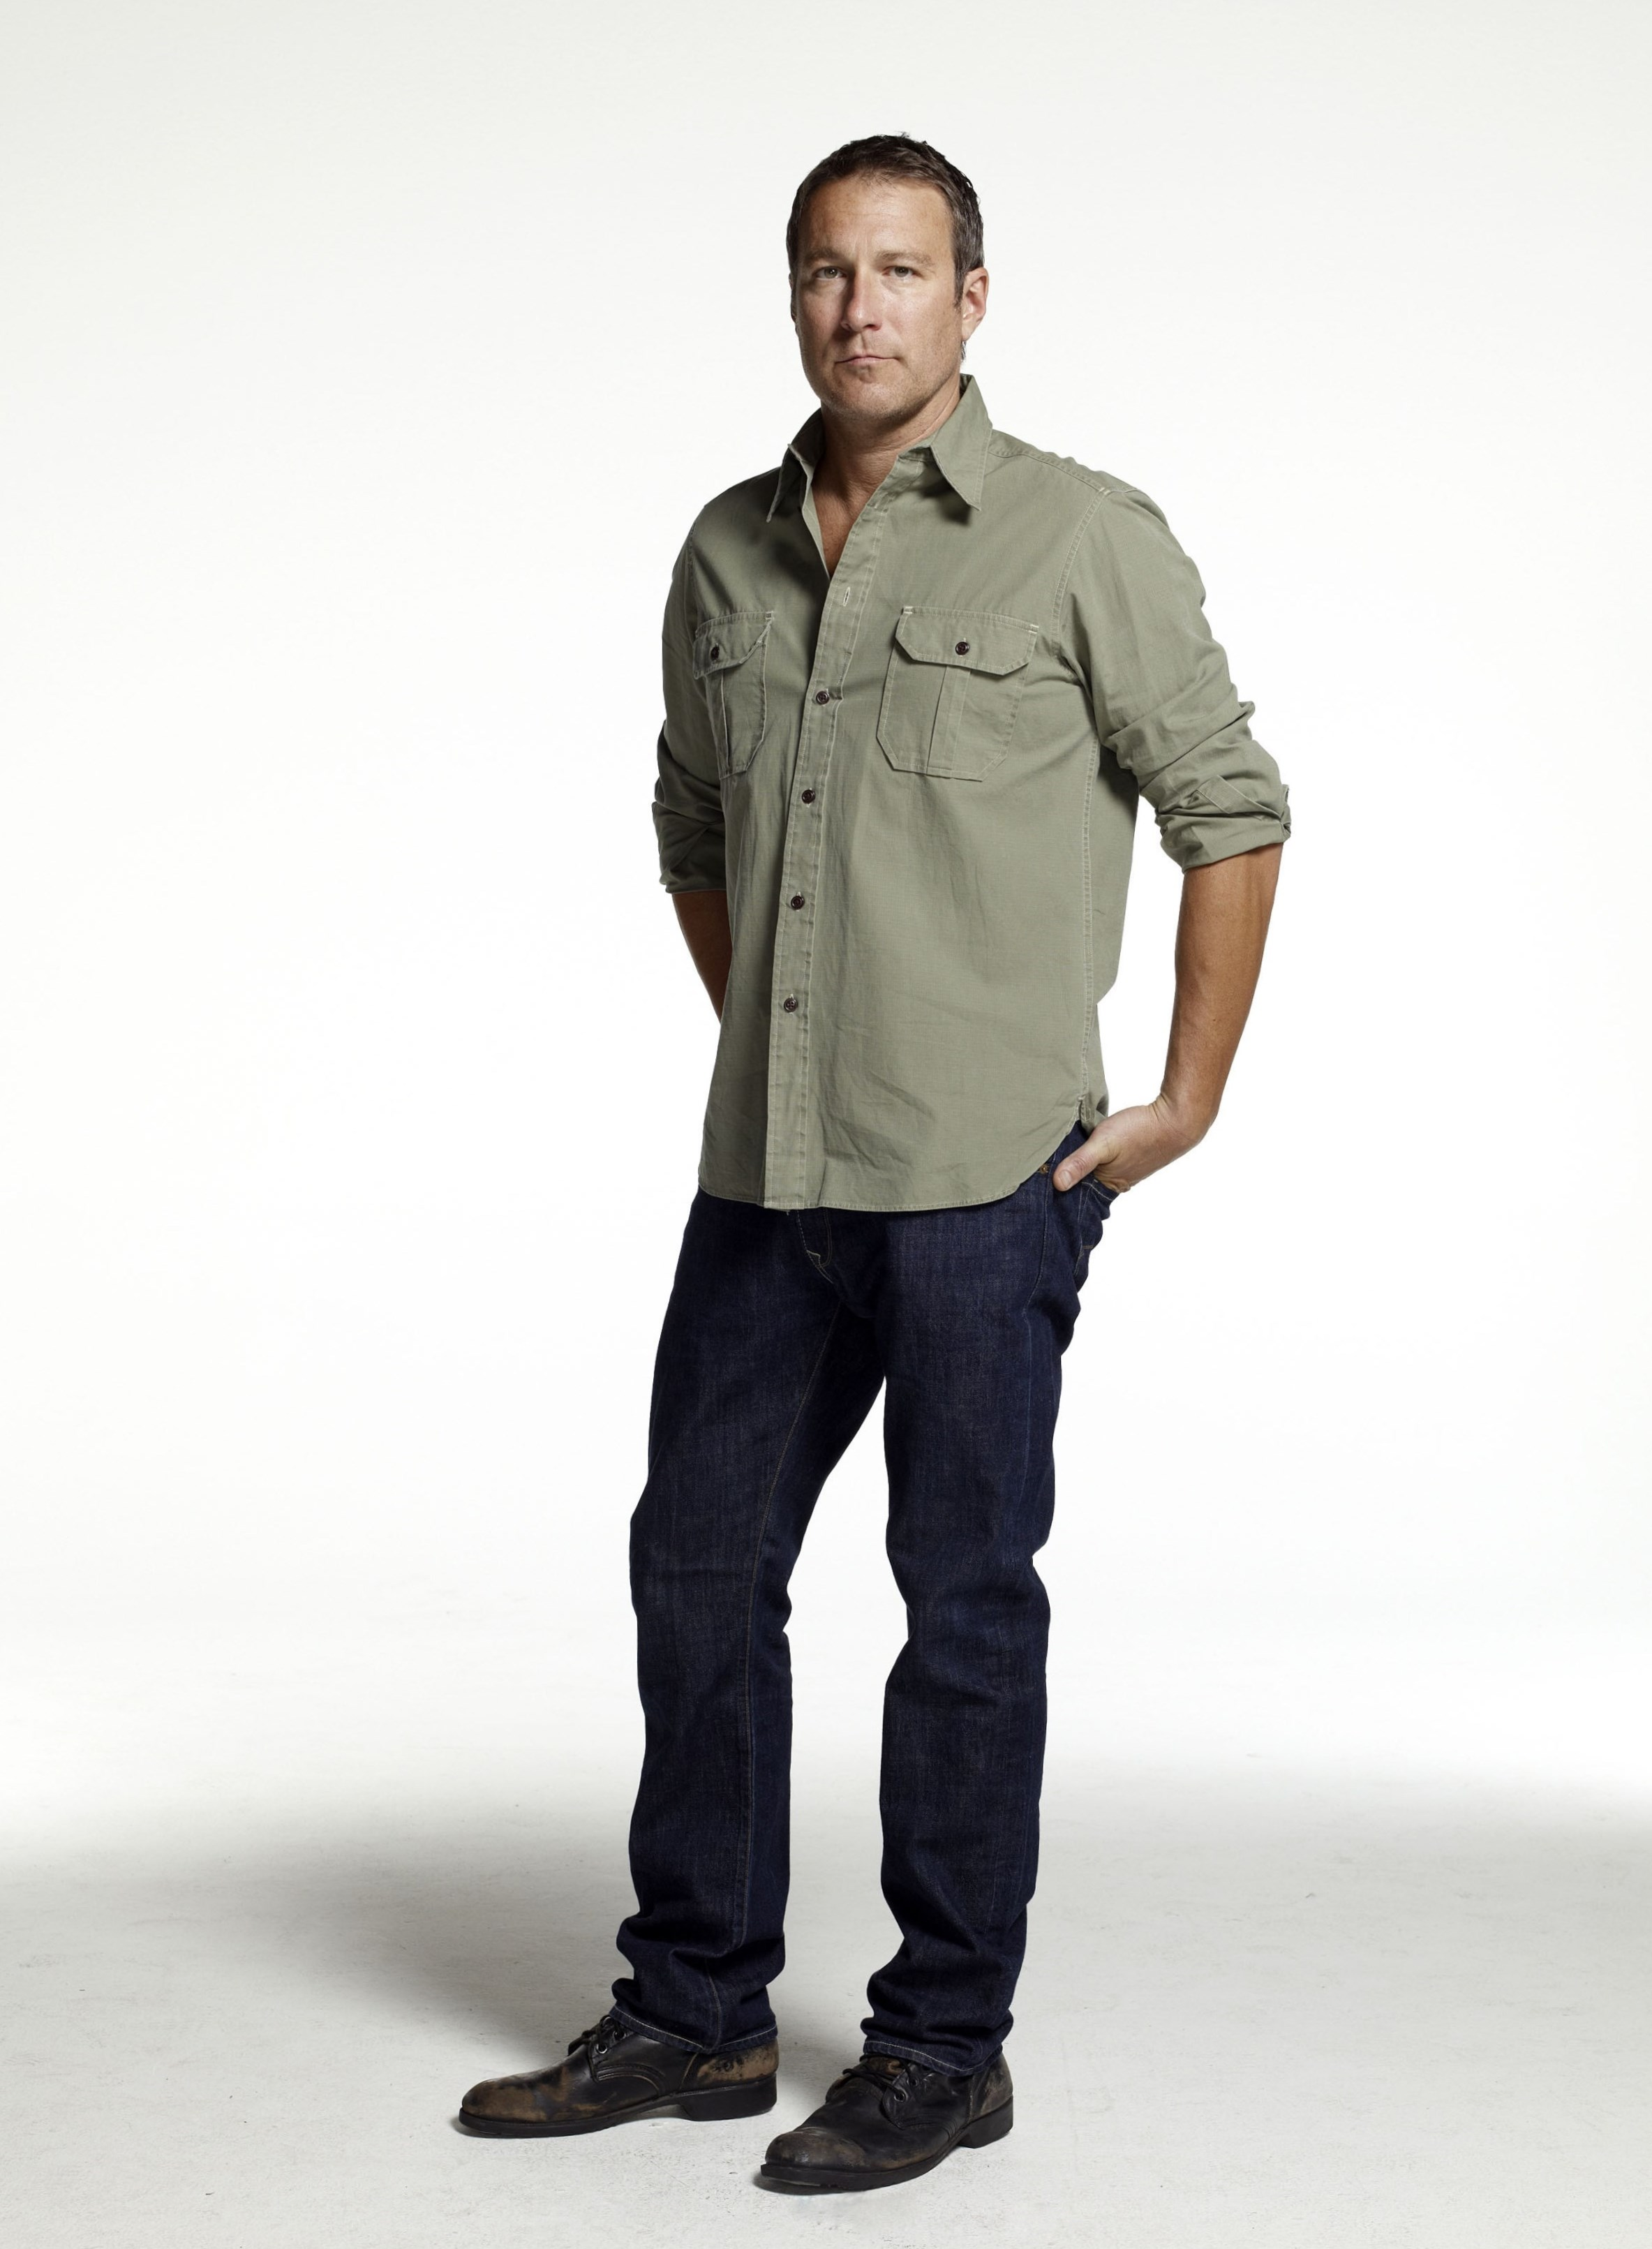 John Corbett - Height, Weight, Age